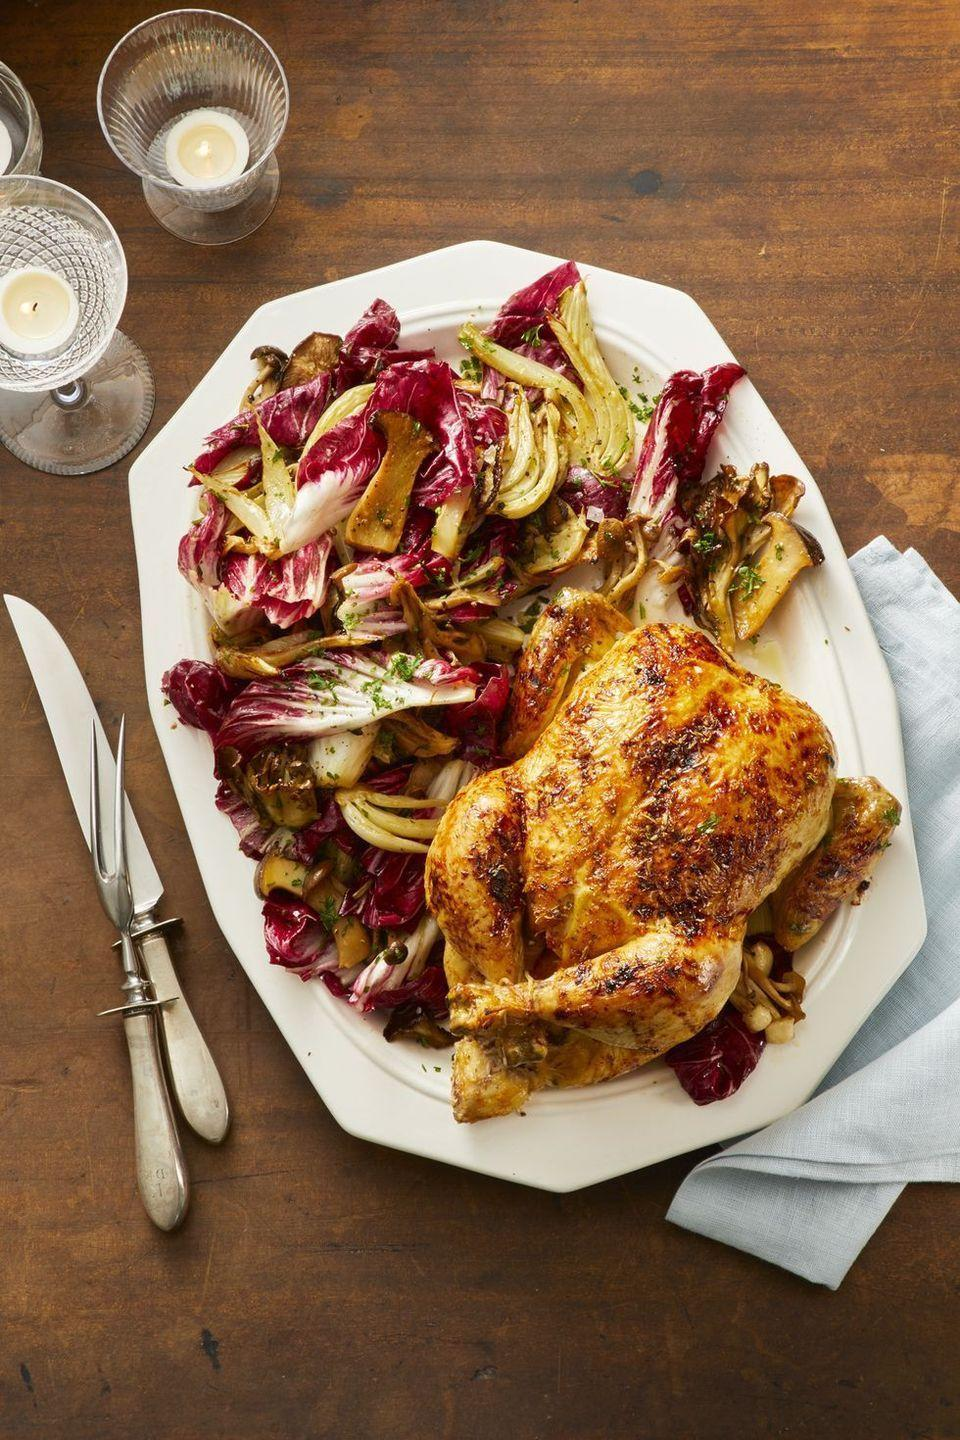 """<p>Roasting a whole chicken has never been so easy. The secret? Using this medley of fresh vegetables as a bed for all those delicious juices.</p><p><em><a href=""""https://www.goodhousekeeping.com/food-recipes/a25323997/orange-ginger-roast-chicken-with-fennel-and-radicchio-salad-recipe/"""" rel=""""nofollow noopener"""" target=""""_blank"""" data-ylk=""""slk:Get the recipe for Orange-Ginger Roast Chicken With Fennel and Radicchio Salad »"""" class=""""link rapid-noclick-resp"""">Get the recipe for Orange-Ginger Roast Chicken With Fennel and Radicchio Salad »</a></em><br></p>"""